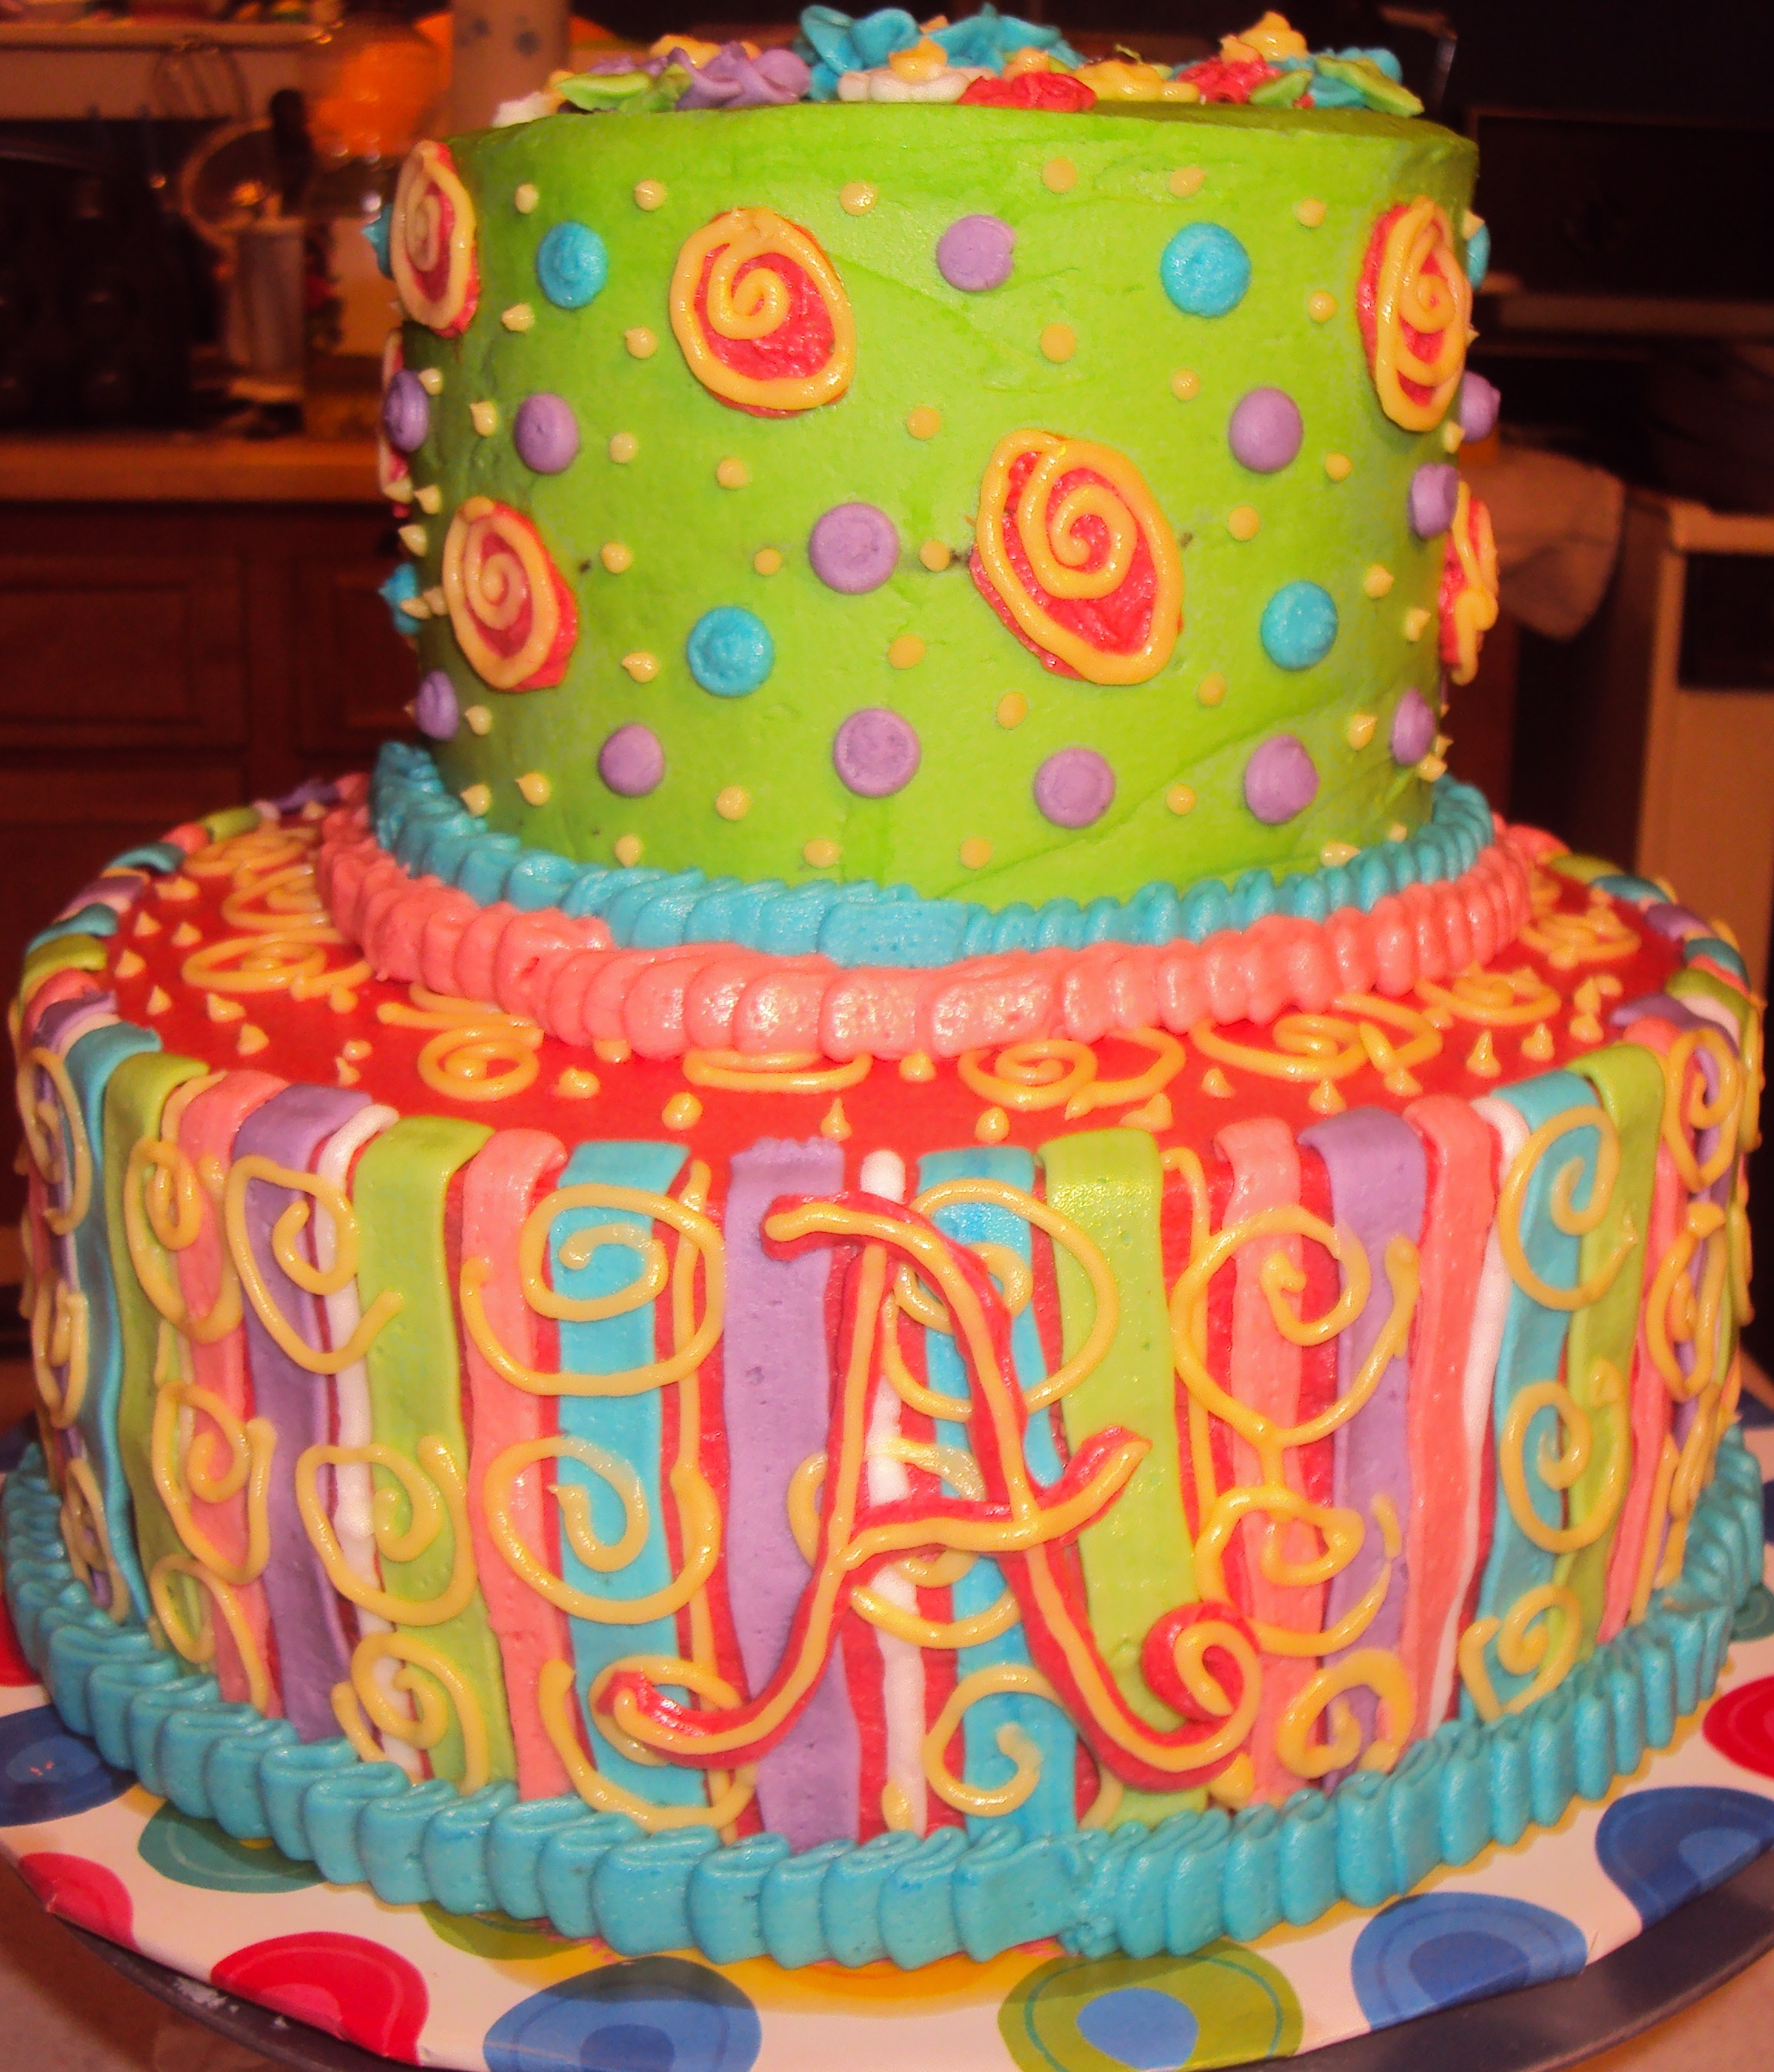 Birthday Cakes For 8 Years Old Girl 7 Two Tier Cakes For 8 Year Olds Photo 8 Year Old Girl Birthday